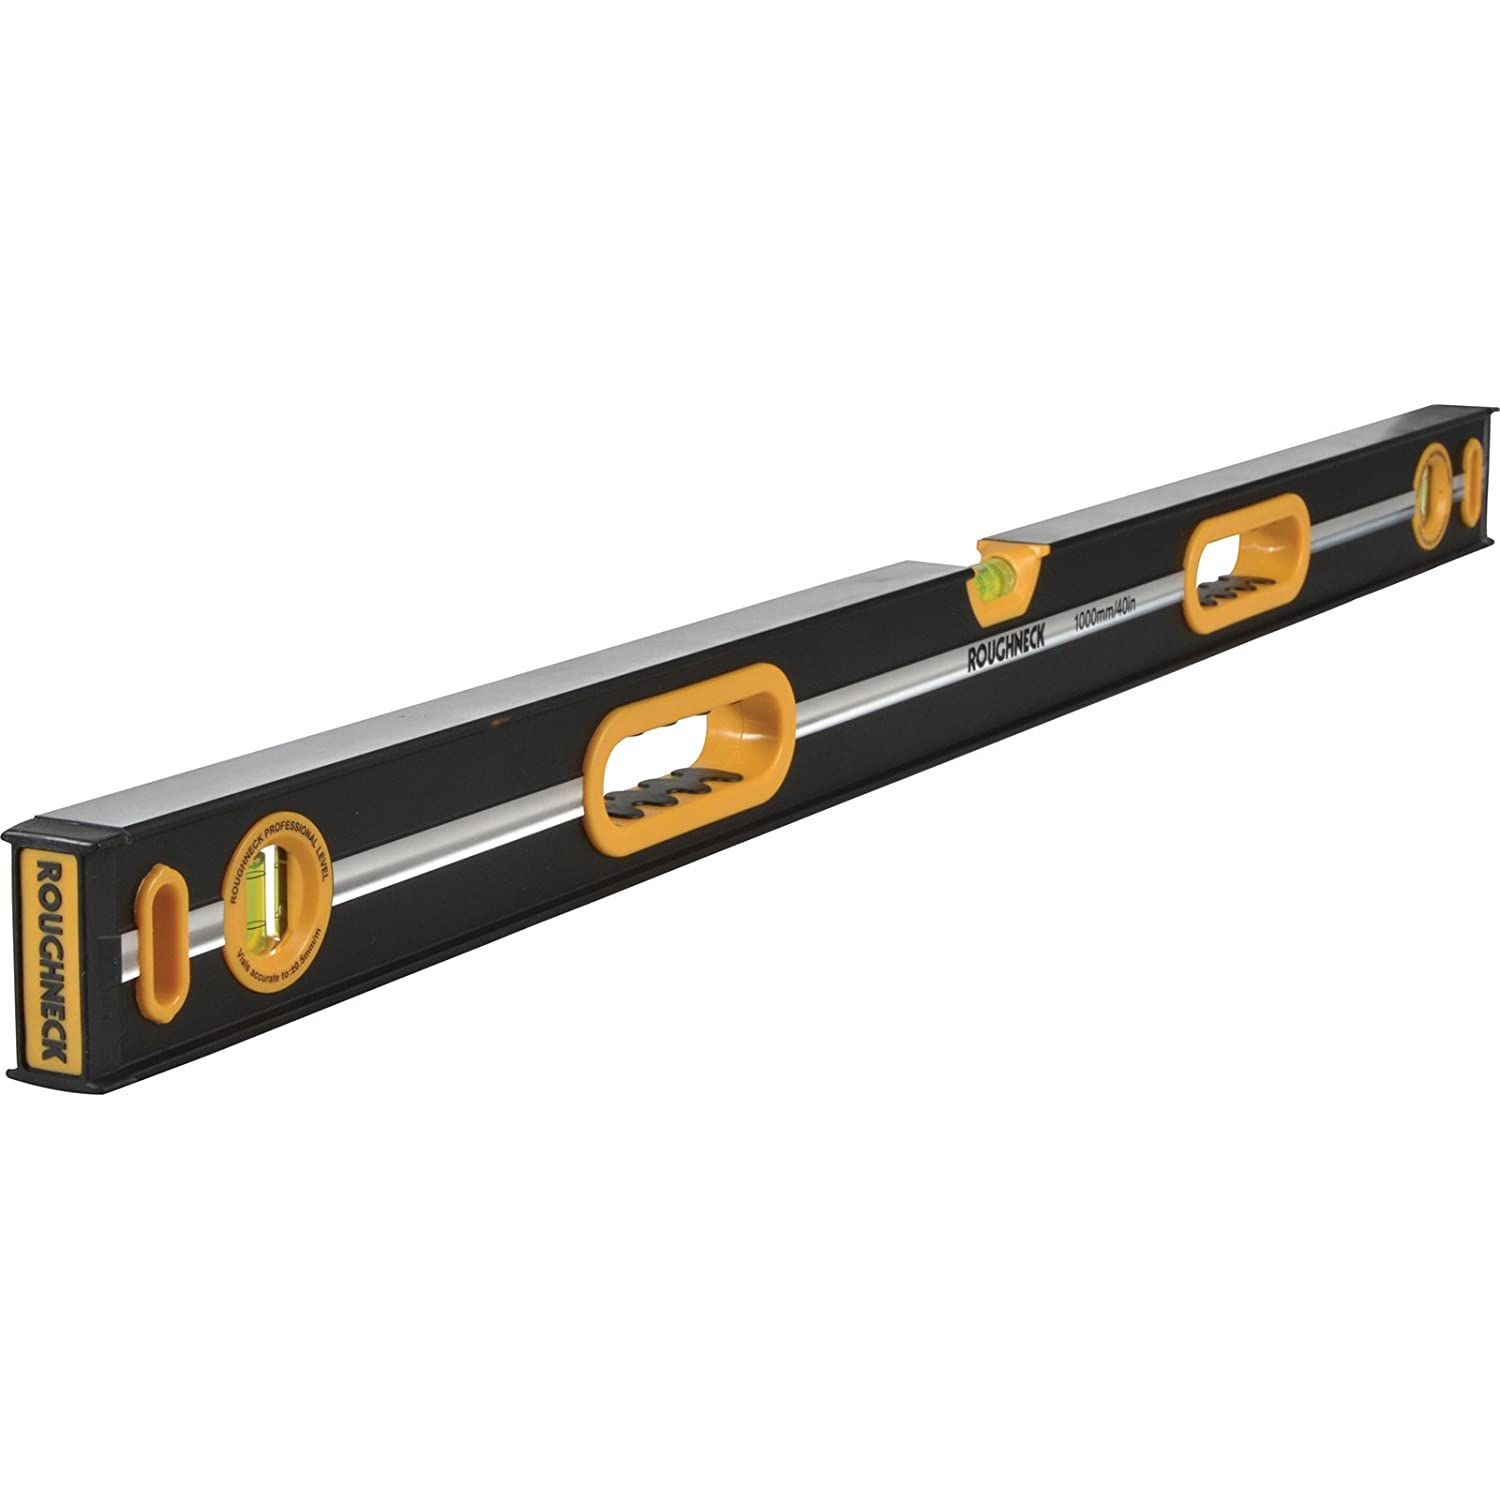 Roughneck ROU43812 Professional Heavy-Duty Spirit Level 120cm (48in), 120 cm